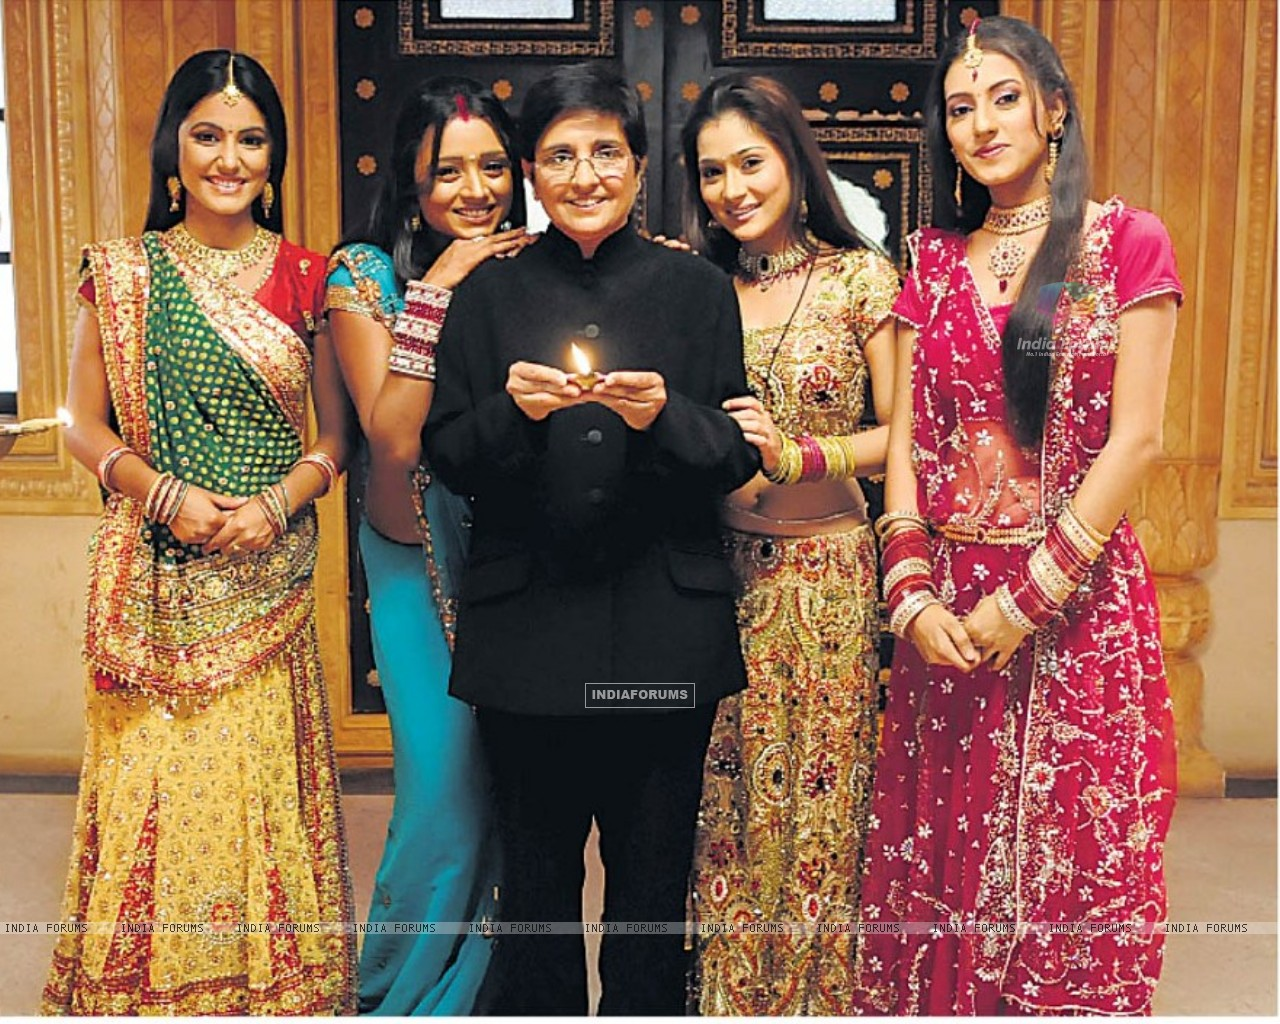 - 165584-additi-gupta-sara-khan-parul-chauhan-hina-khan-kiran-bedi-on-sp